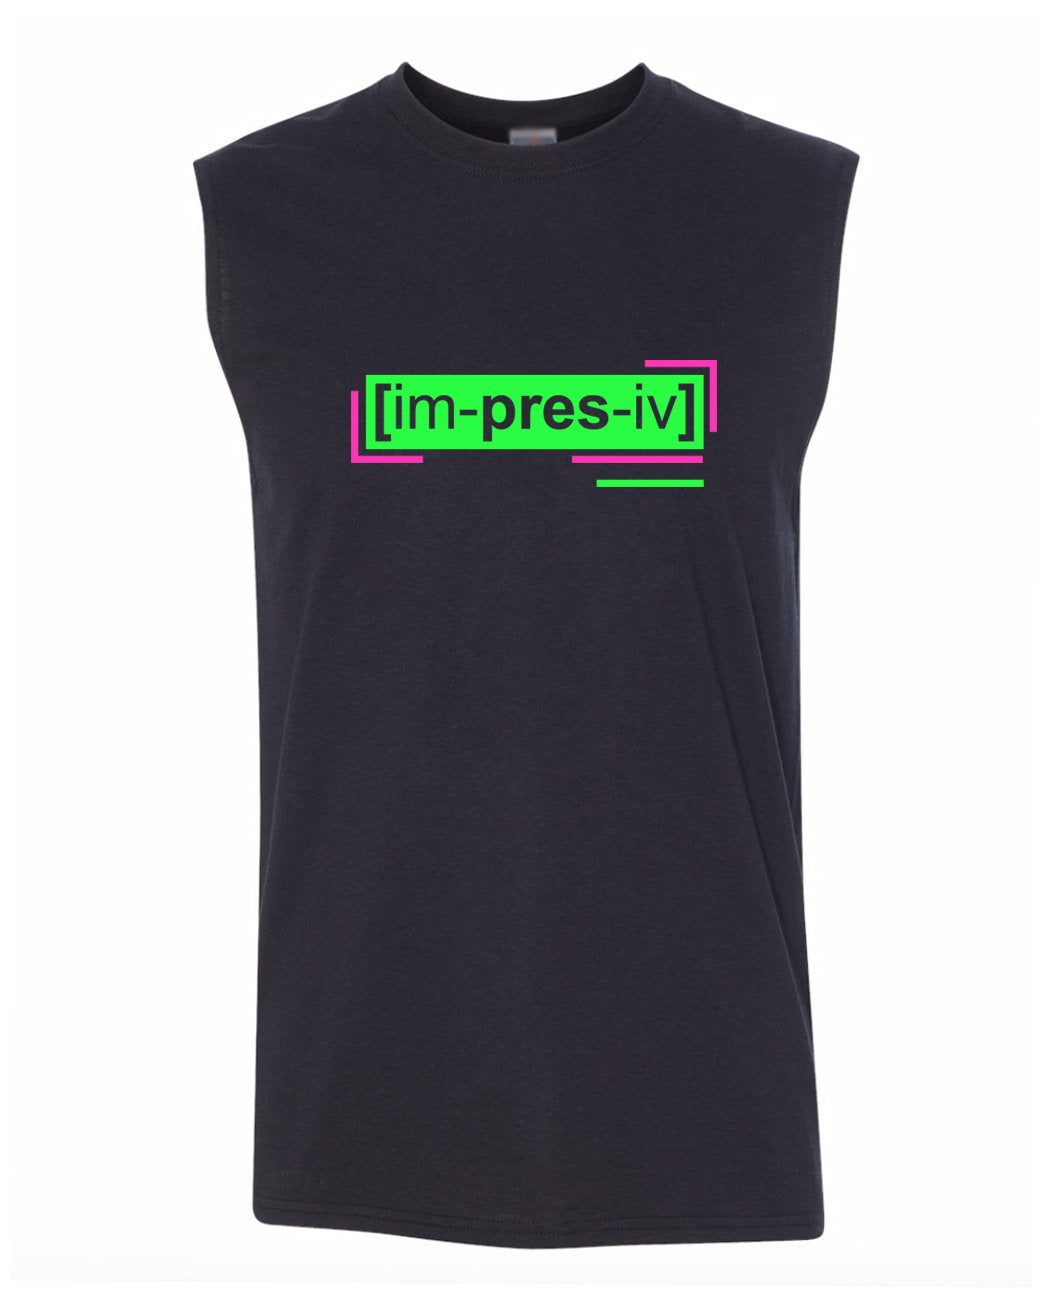 florescent green impressive men's sleeveless tee tank top